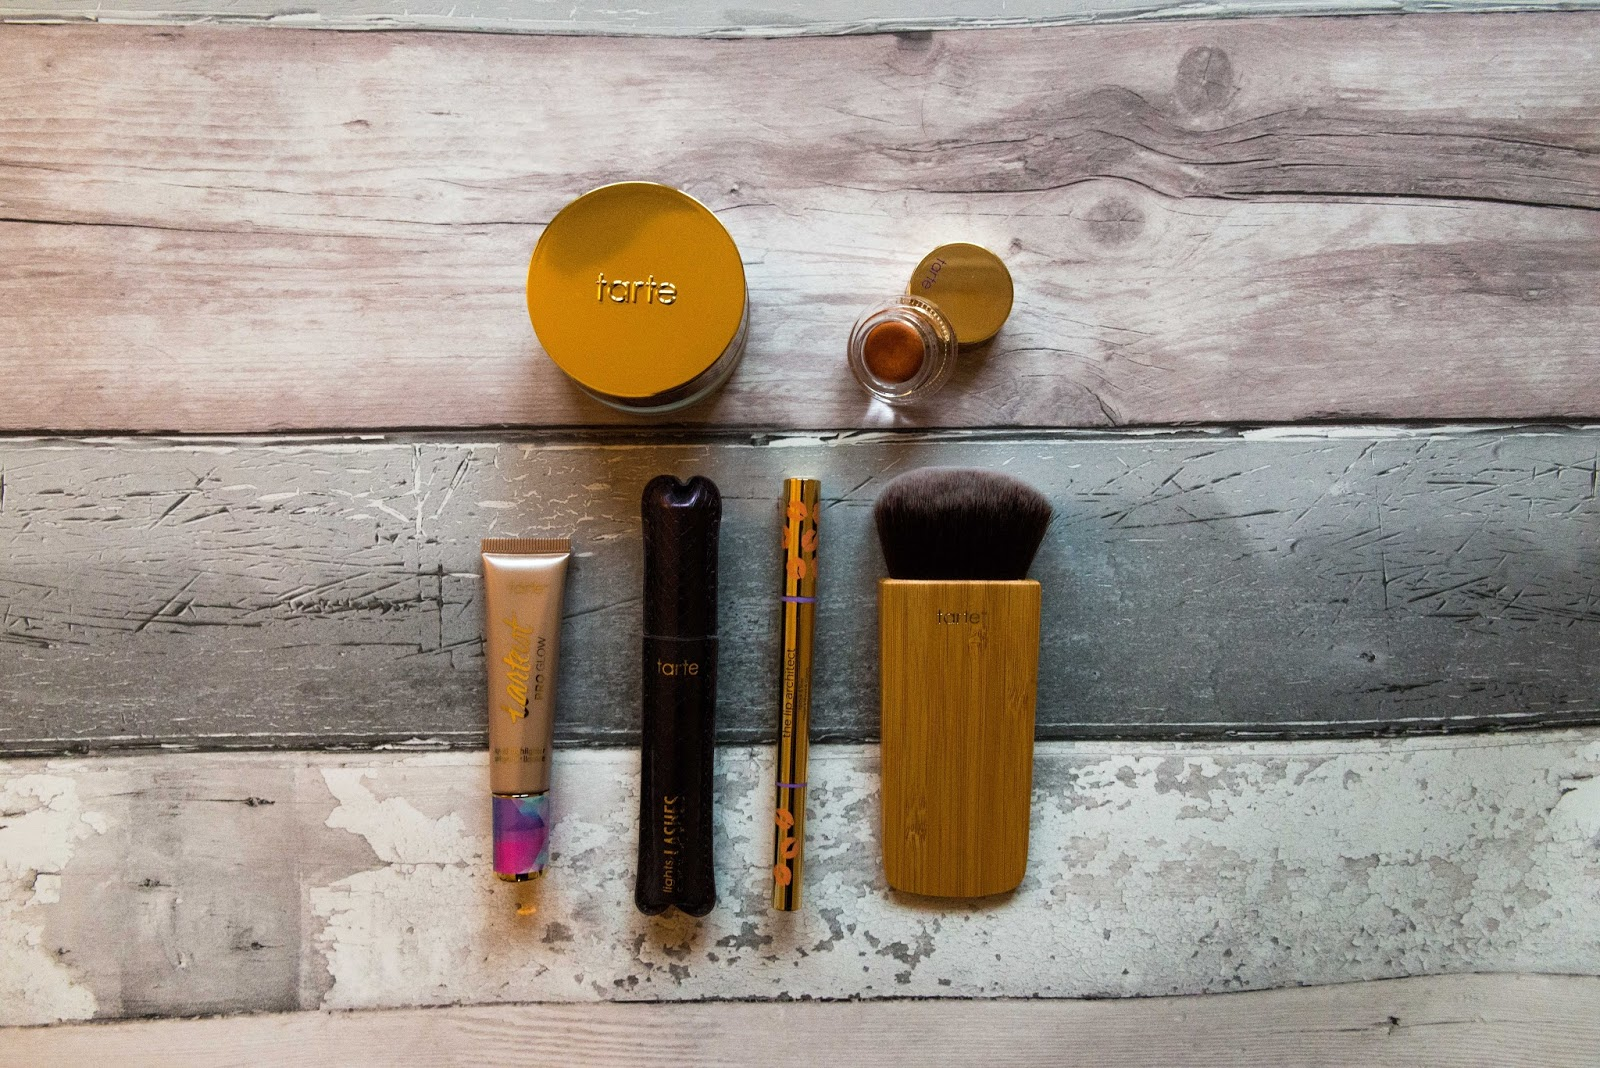 tarte haul review blog liquid grain liquidgrain makeup beauty